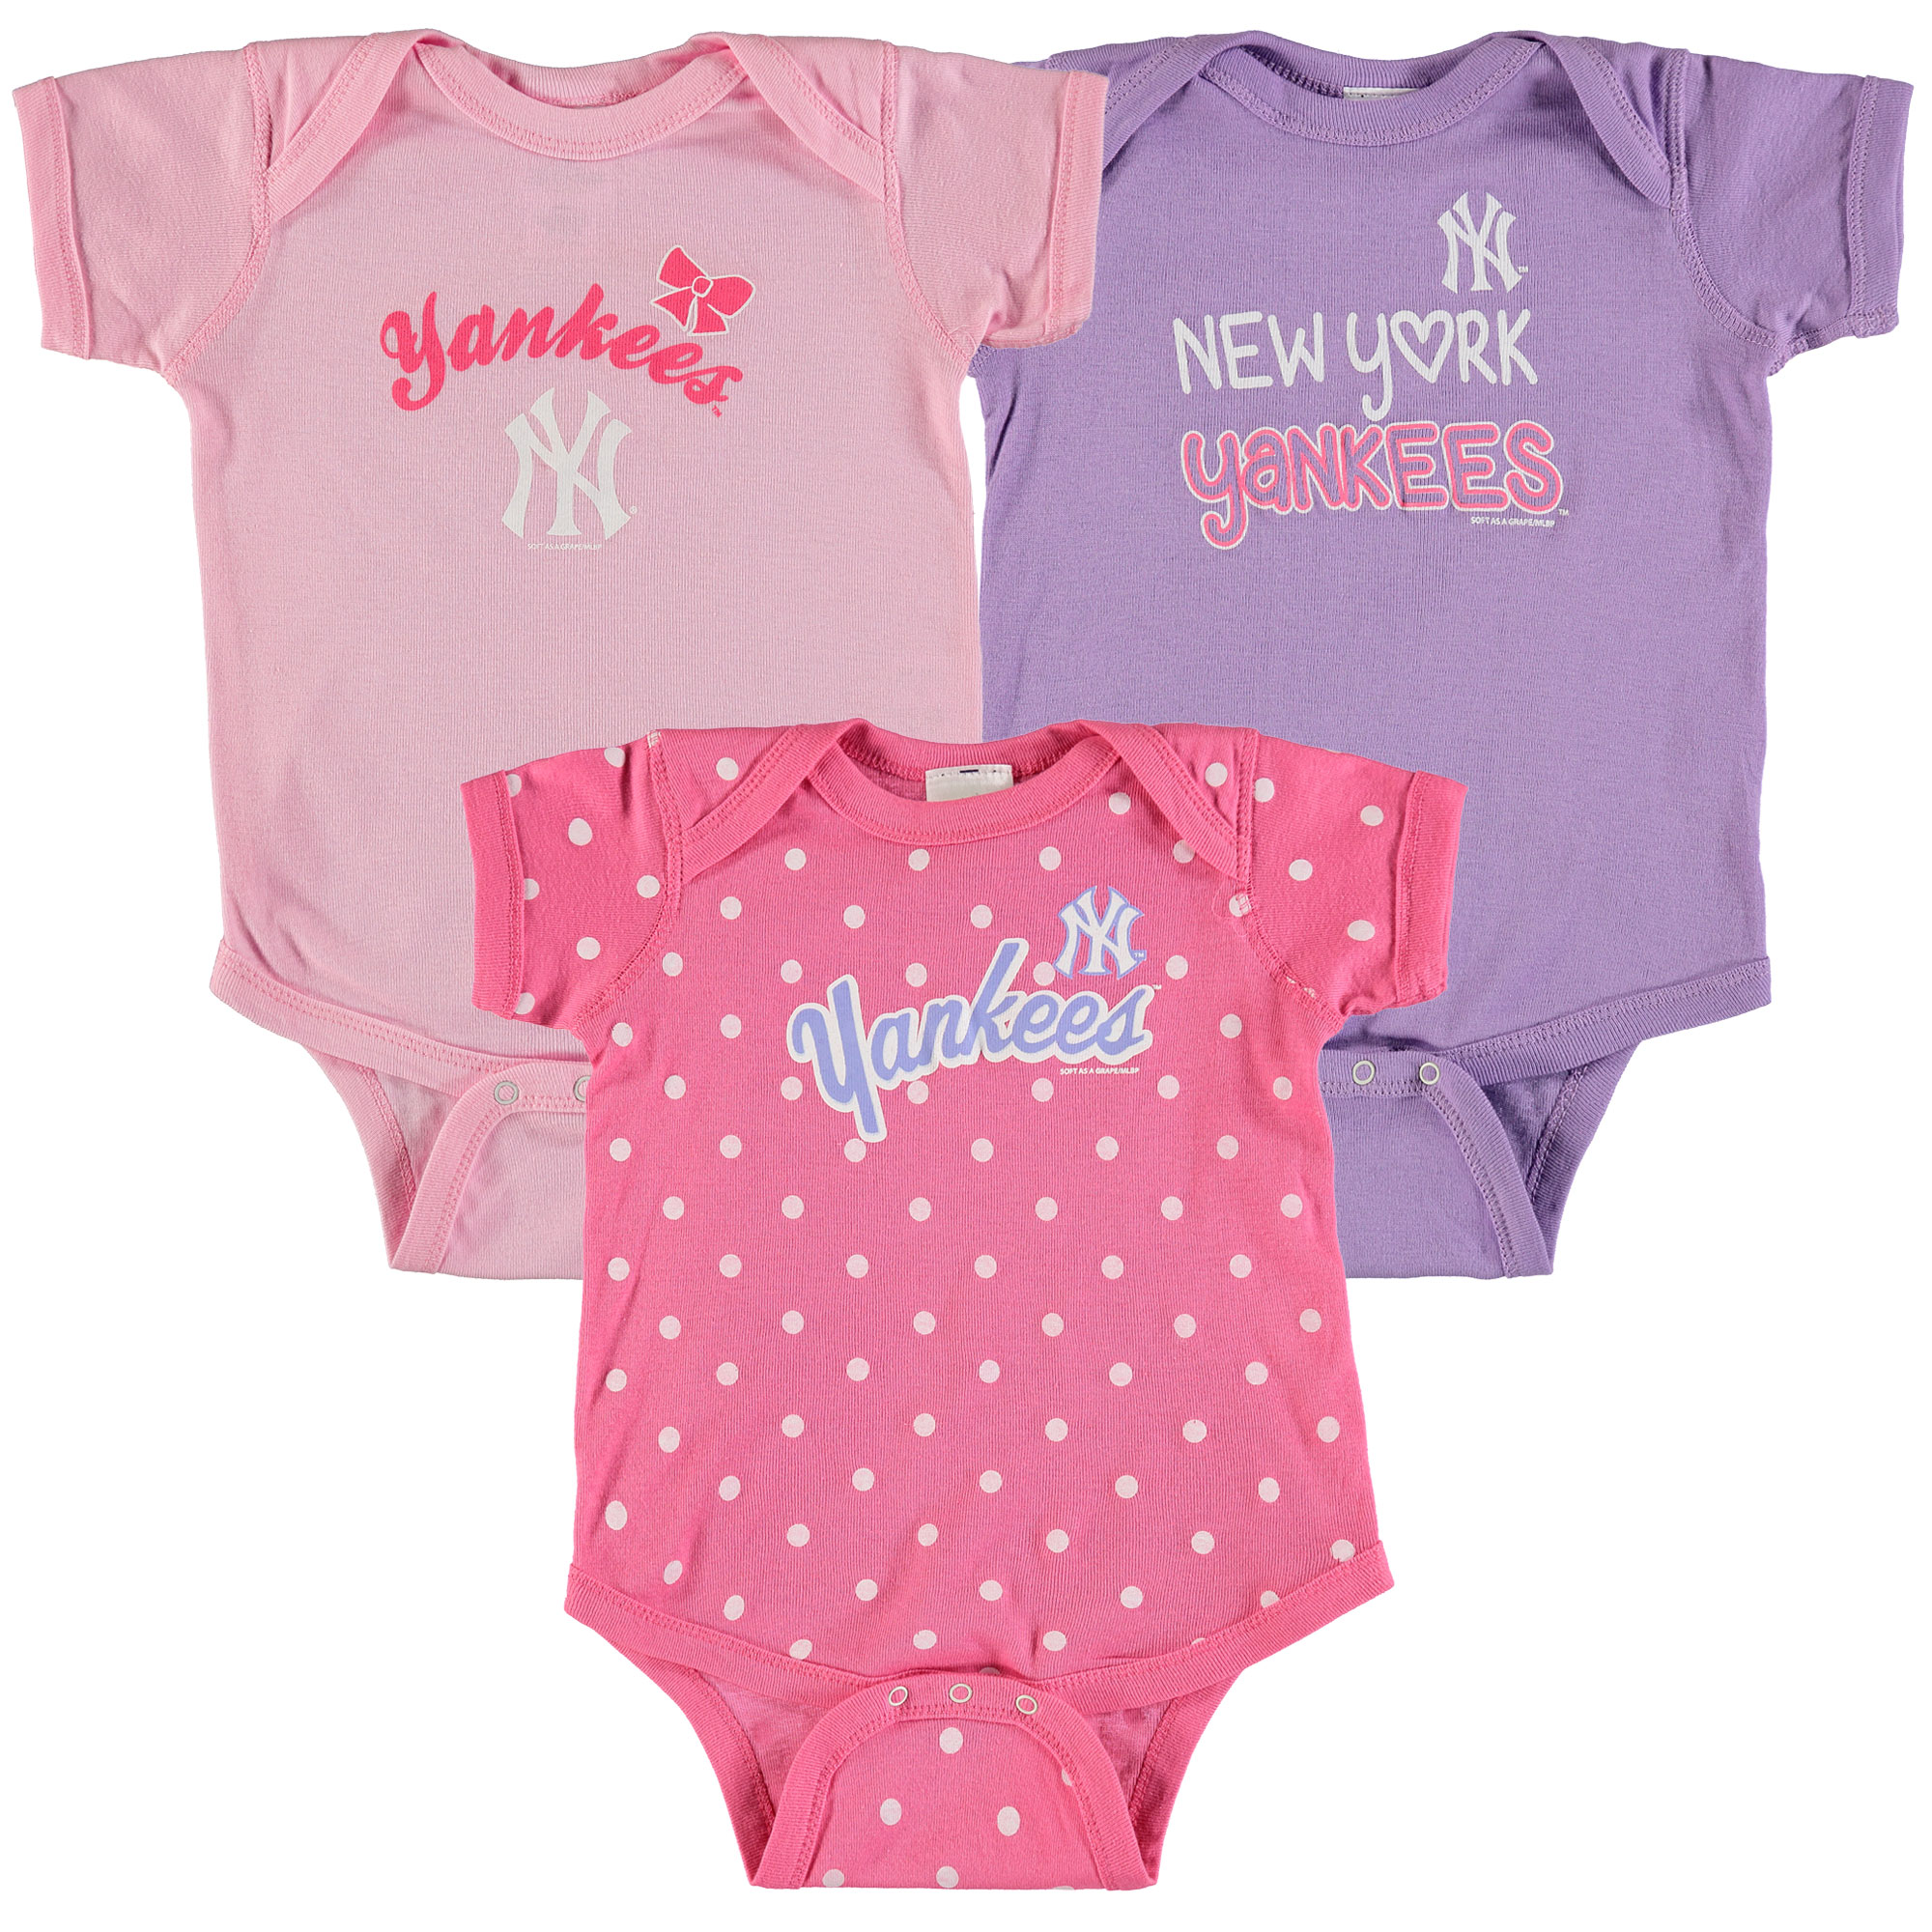 New York Yankees Soft as a Grape Girls Infant 3-Pack Rookie Bodysuit Set - Pink/Purple